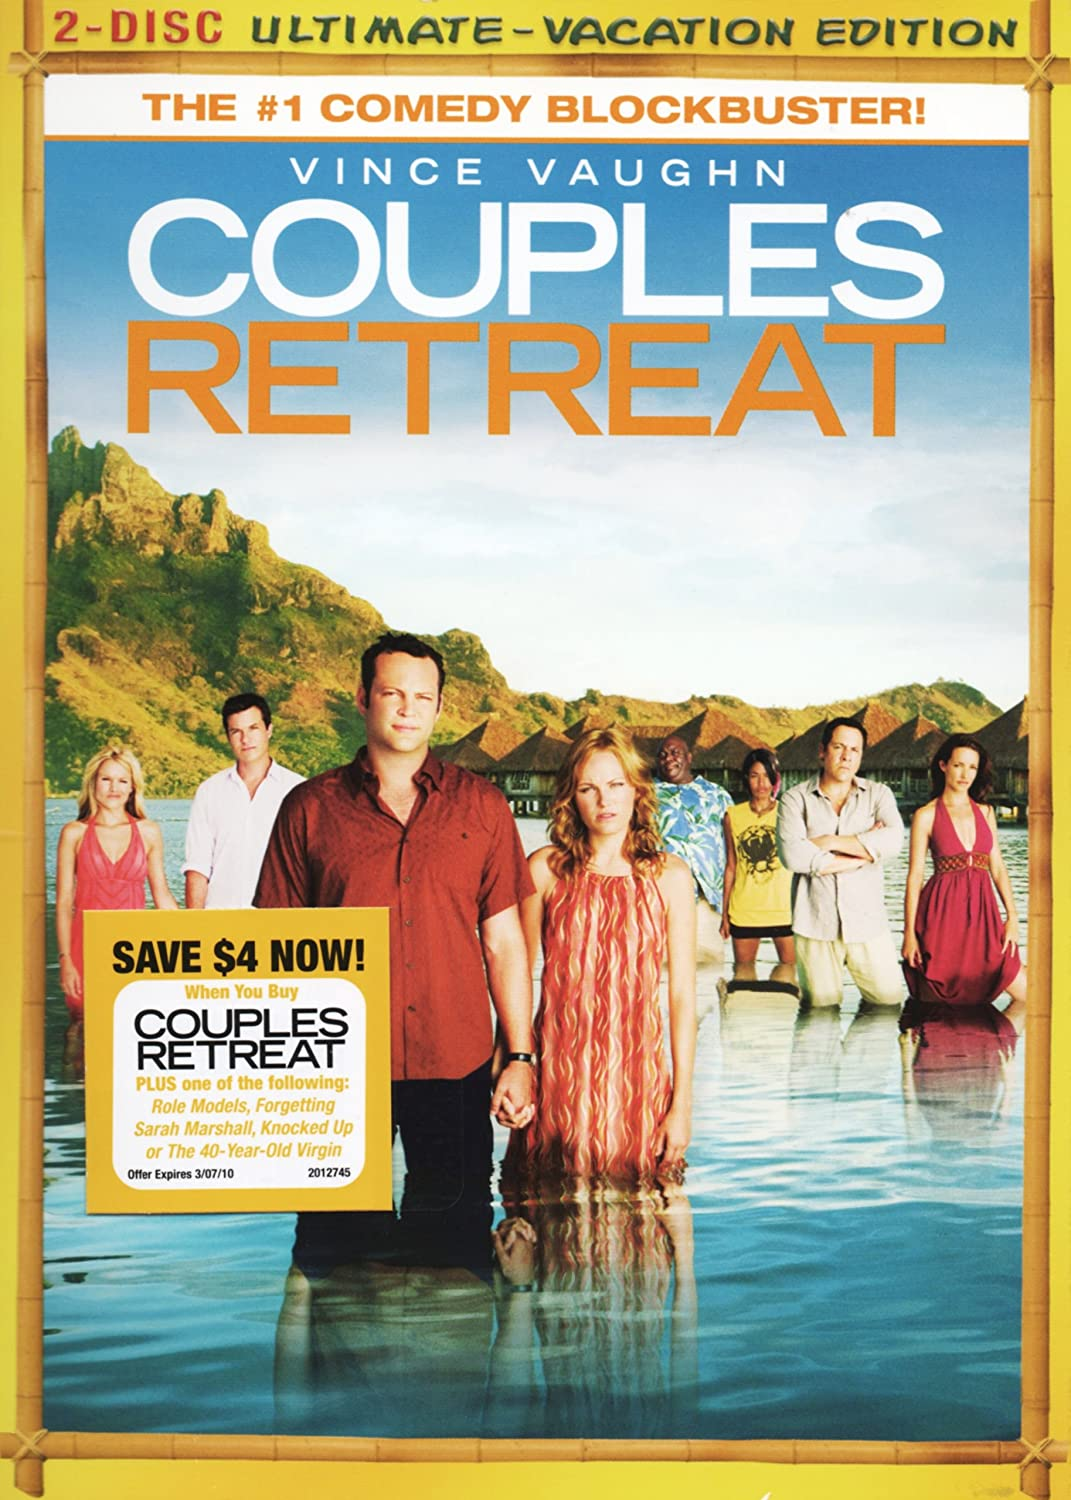 Vince Vaughn And Victoria >> Amazon Com Couples Retreat 2 Disc Ultimate Vacation